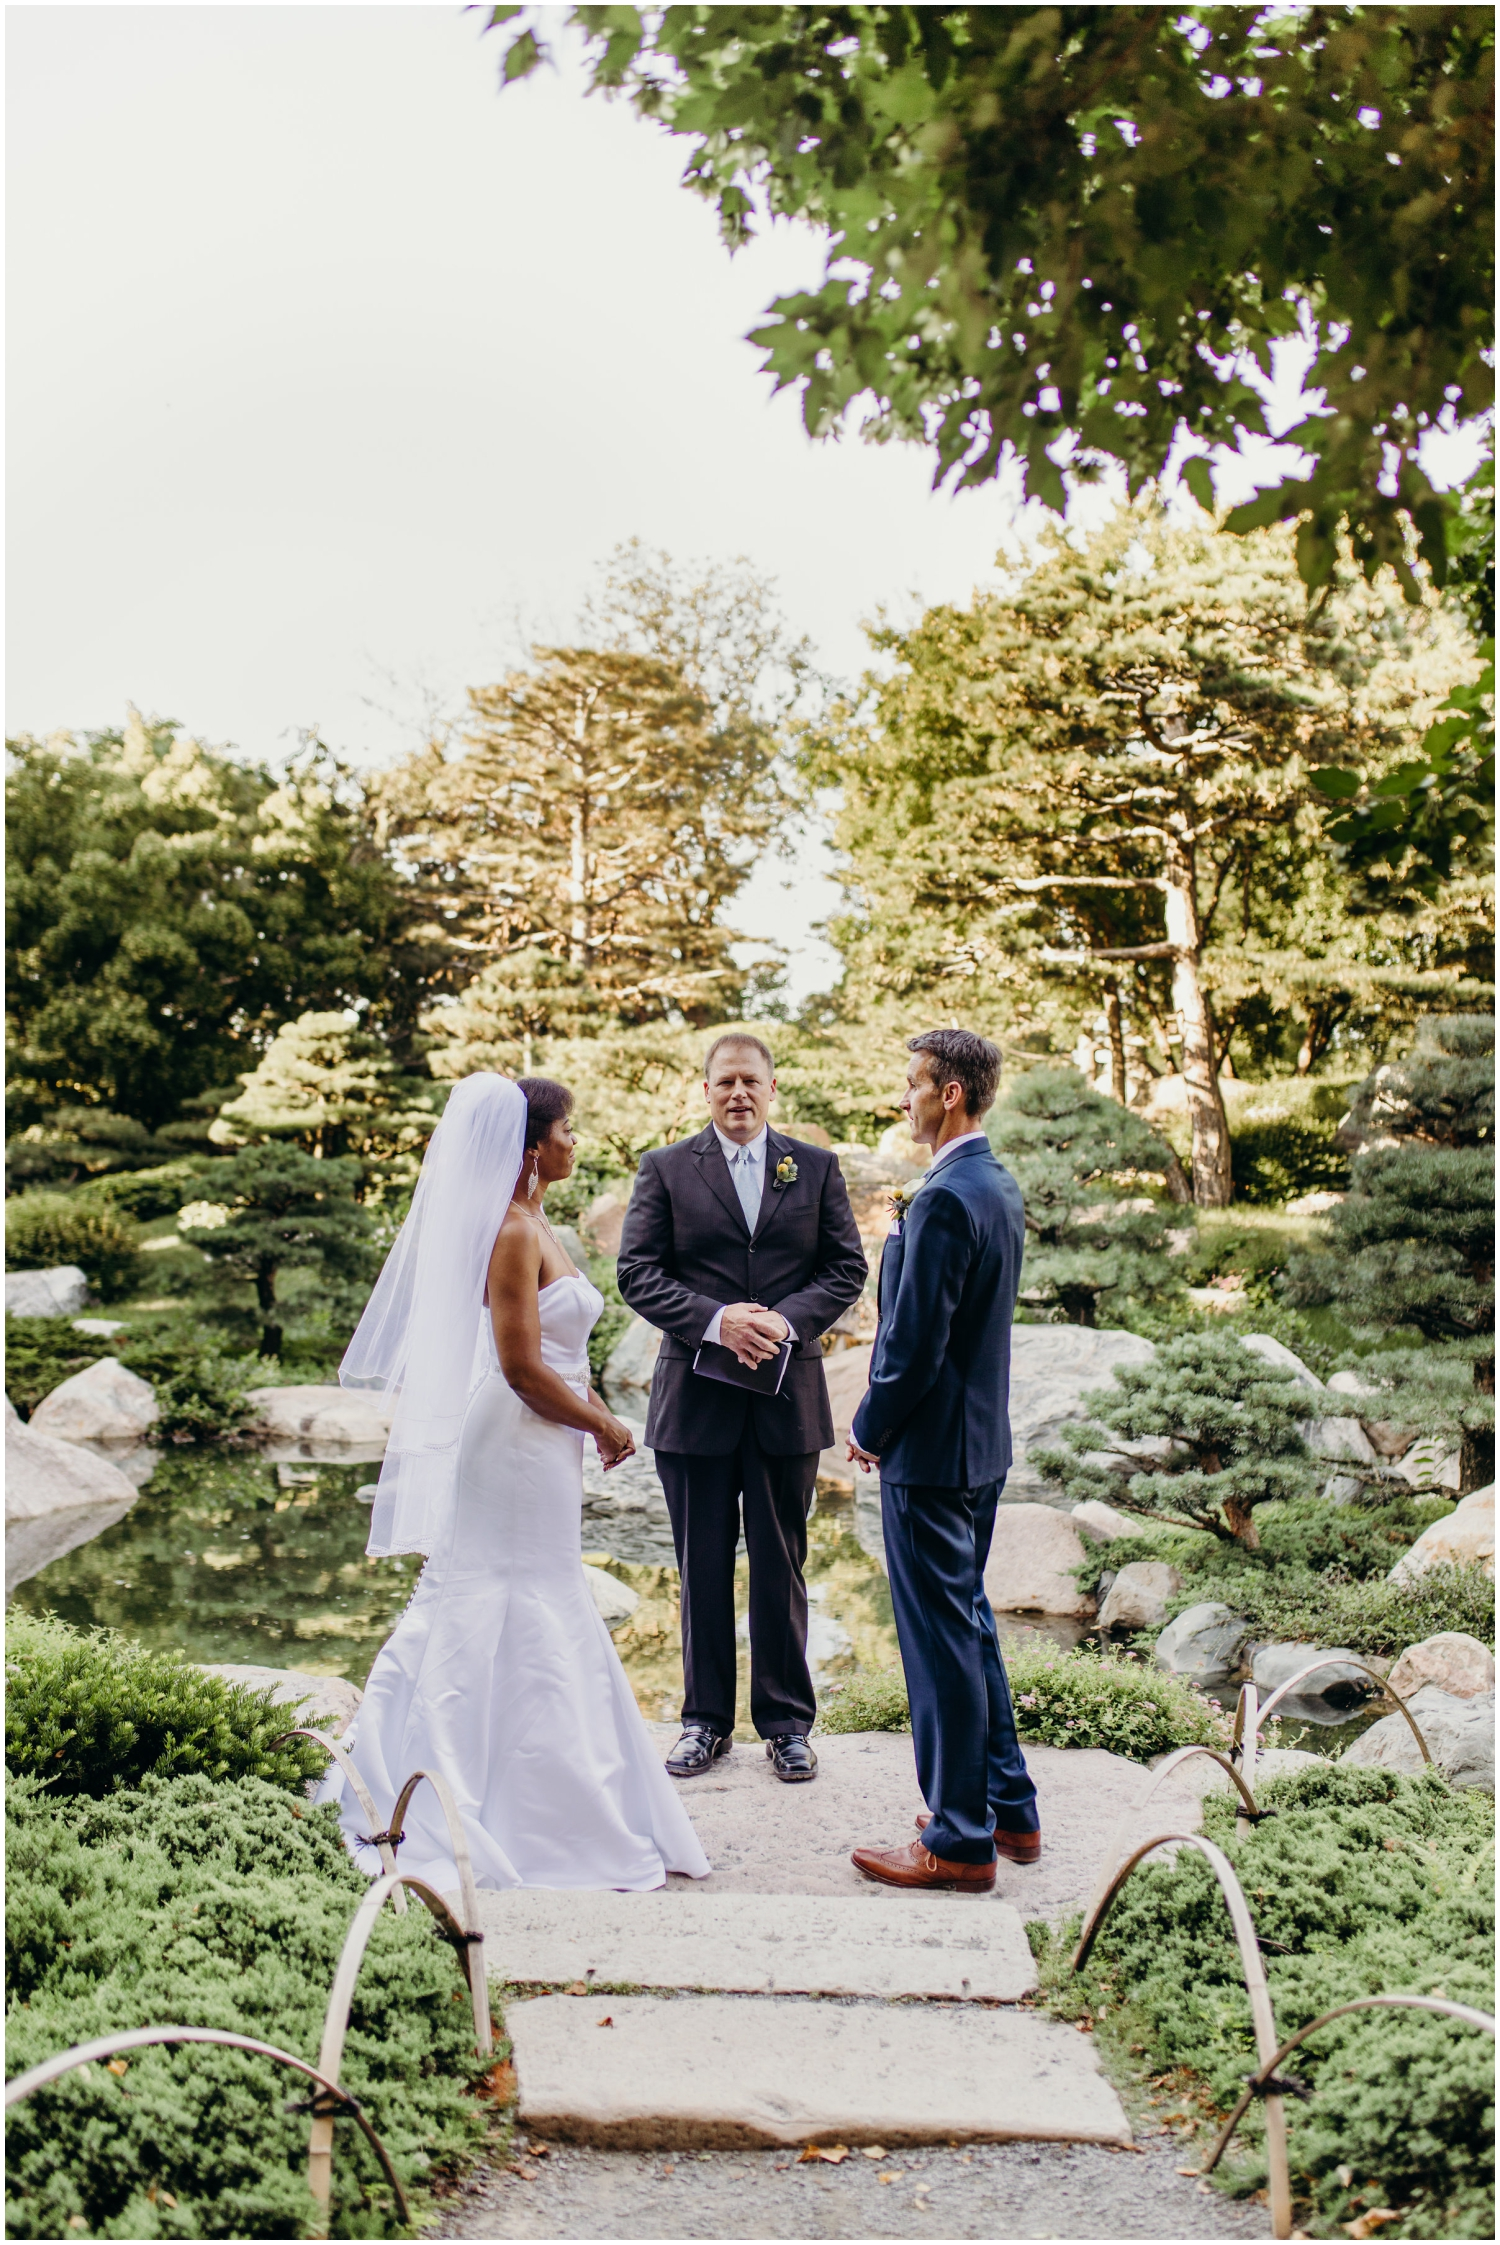 Bride and groom at Como Conservatory